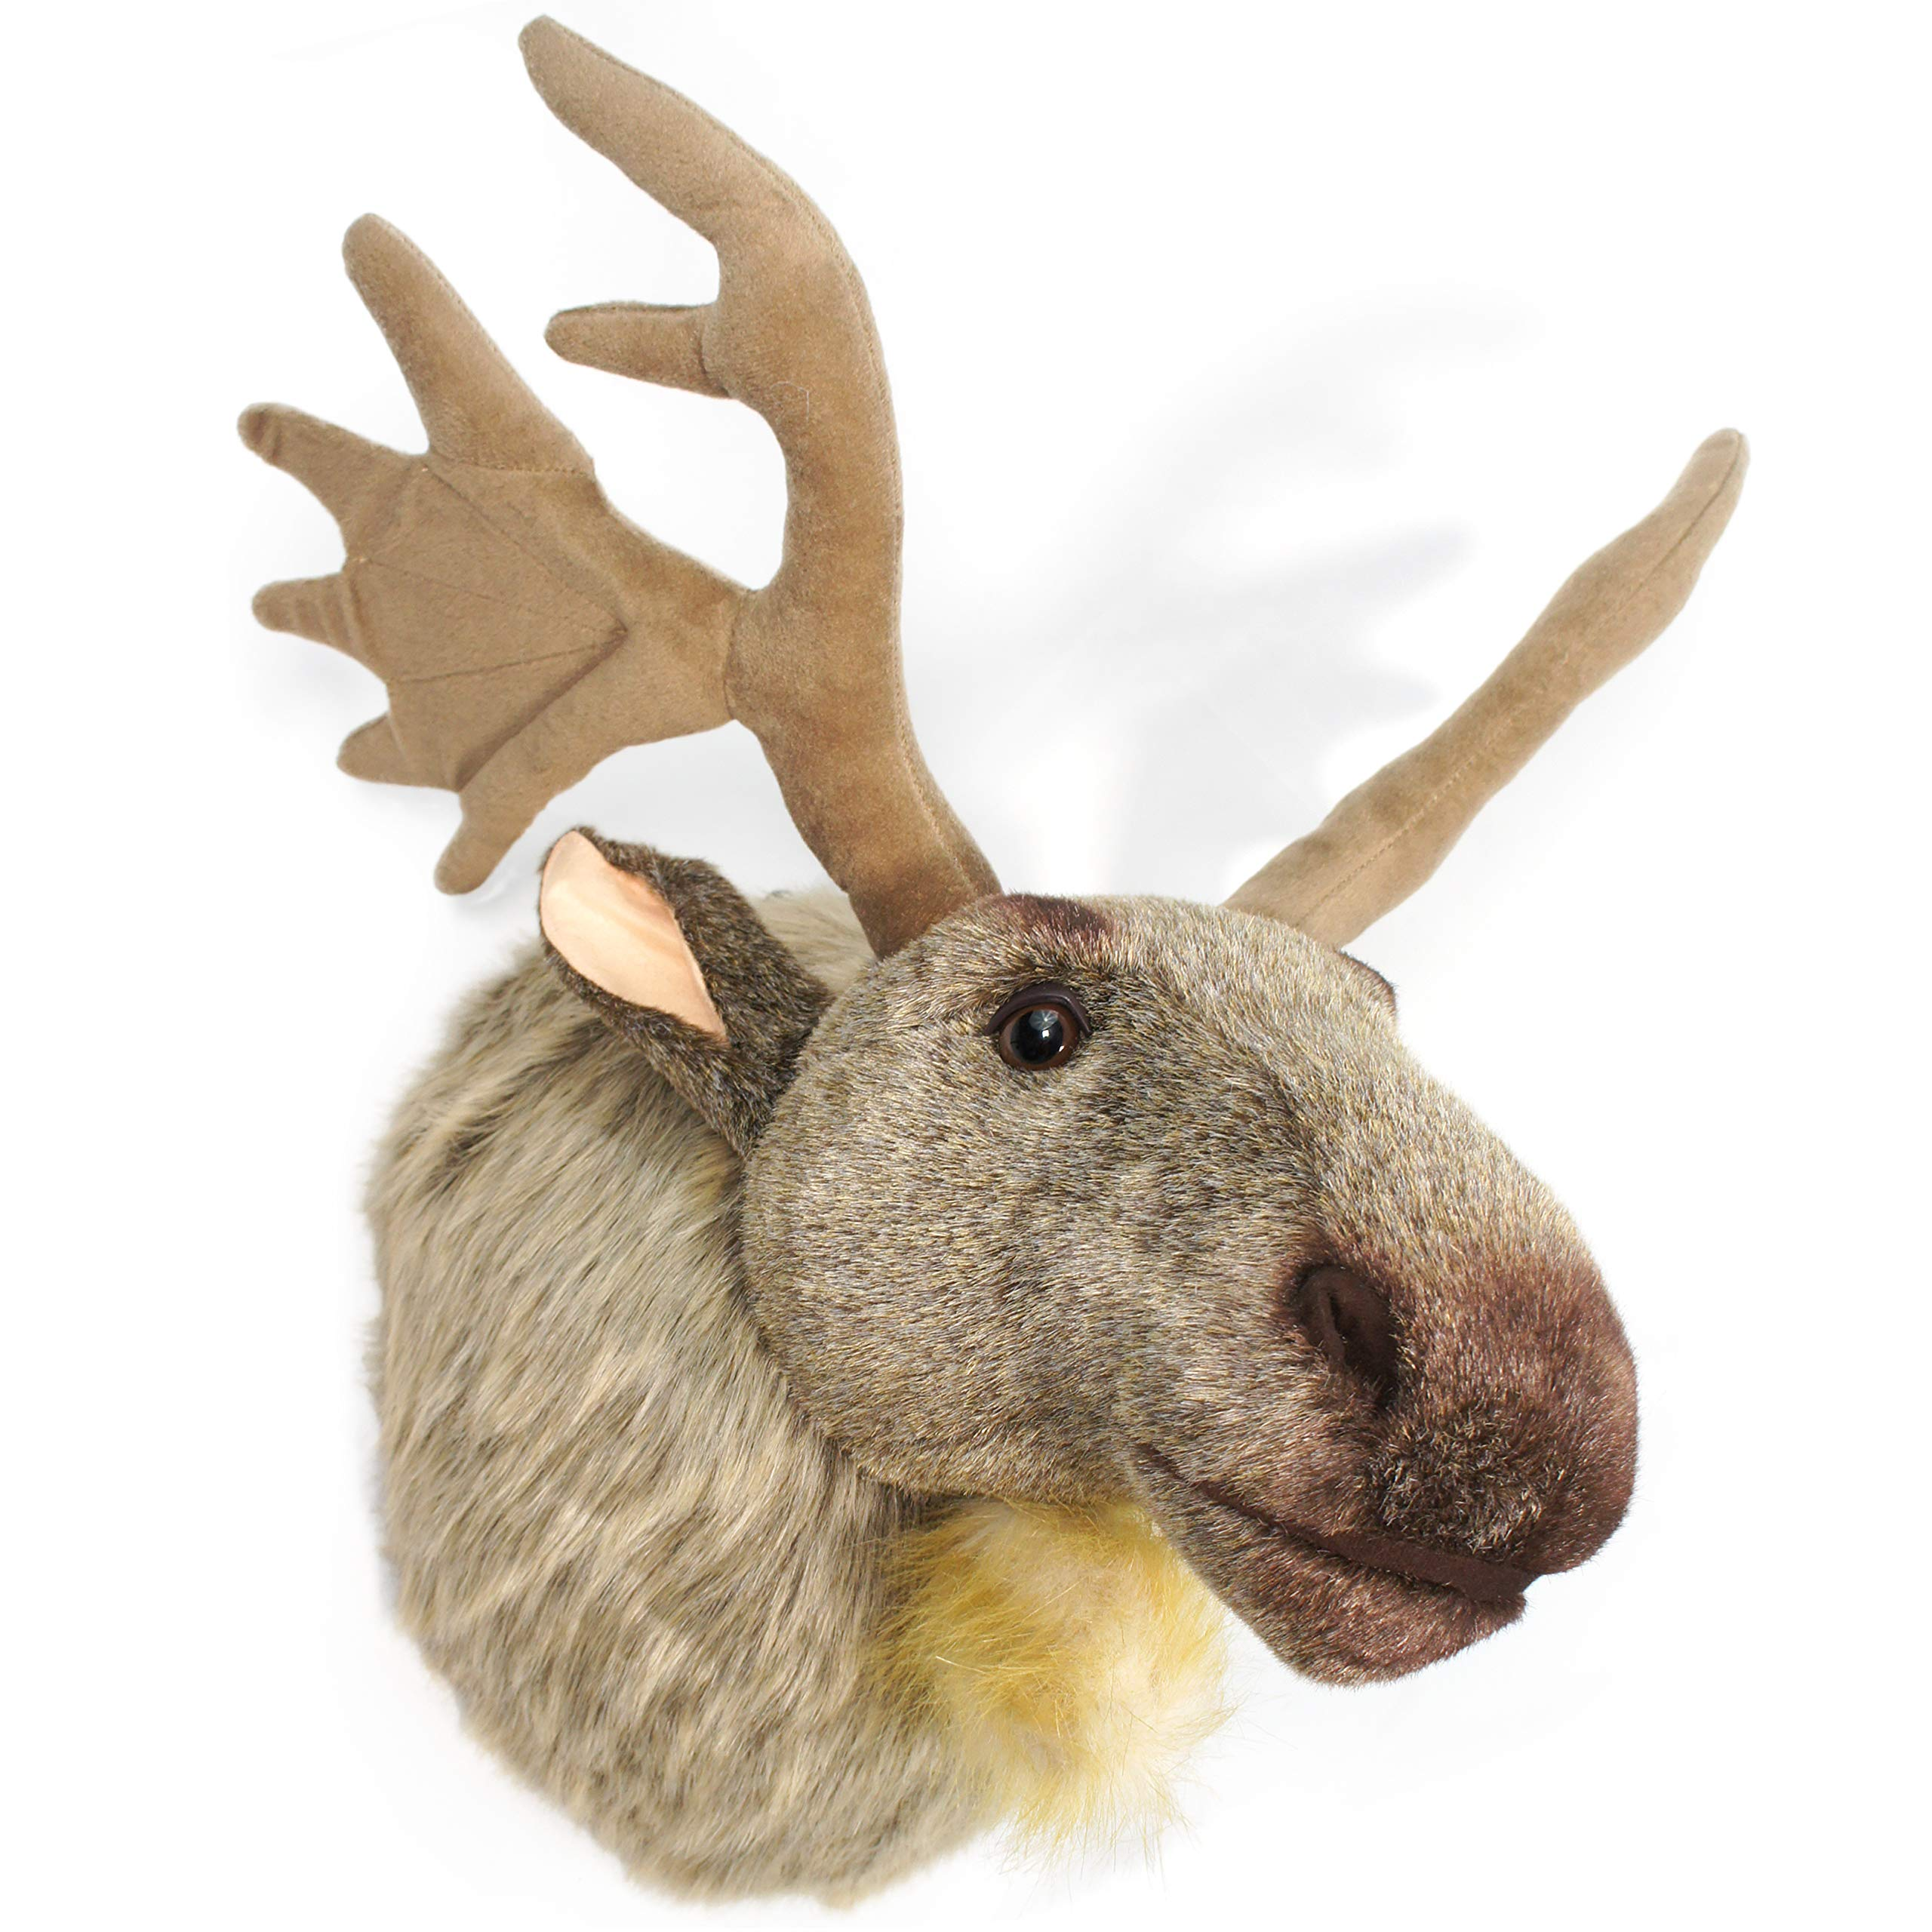 VIAHART Muscovy The Moose | 24 Inch (with Antlers) Stuffed Animal Plush Head Trophy Wall Mount Bust | Shipping from Texas | by Tiger Tale Toys by VIAHART